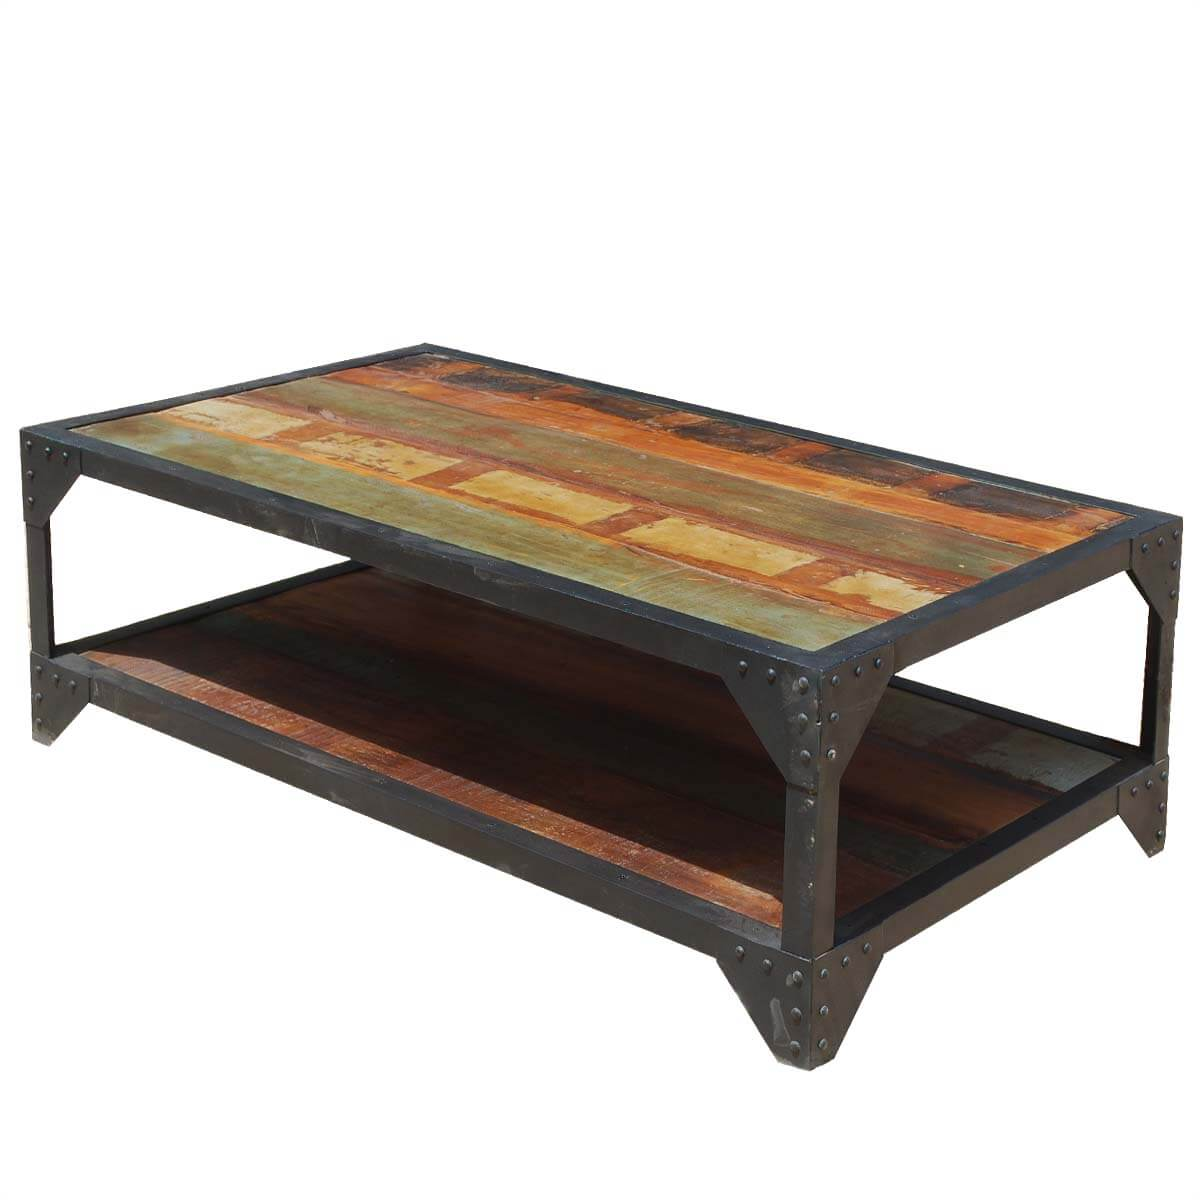 Reclaimed Wood Industrial Coffee Table: Molino Reclaimed Wood 2 Tier Wrought Iron Industrial